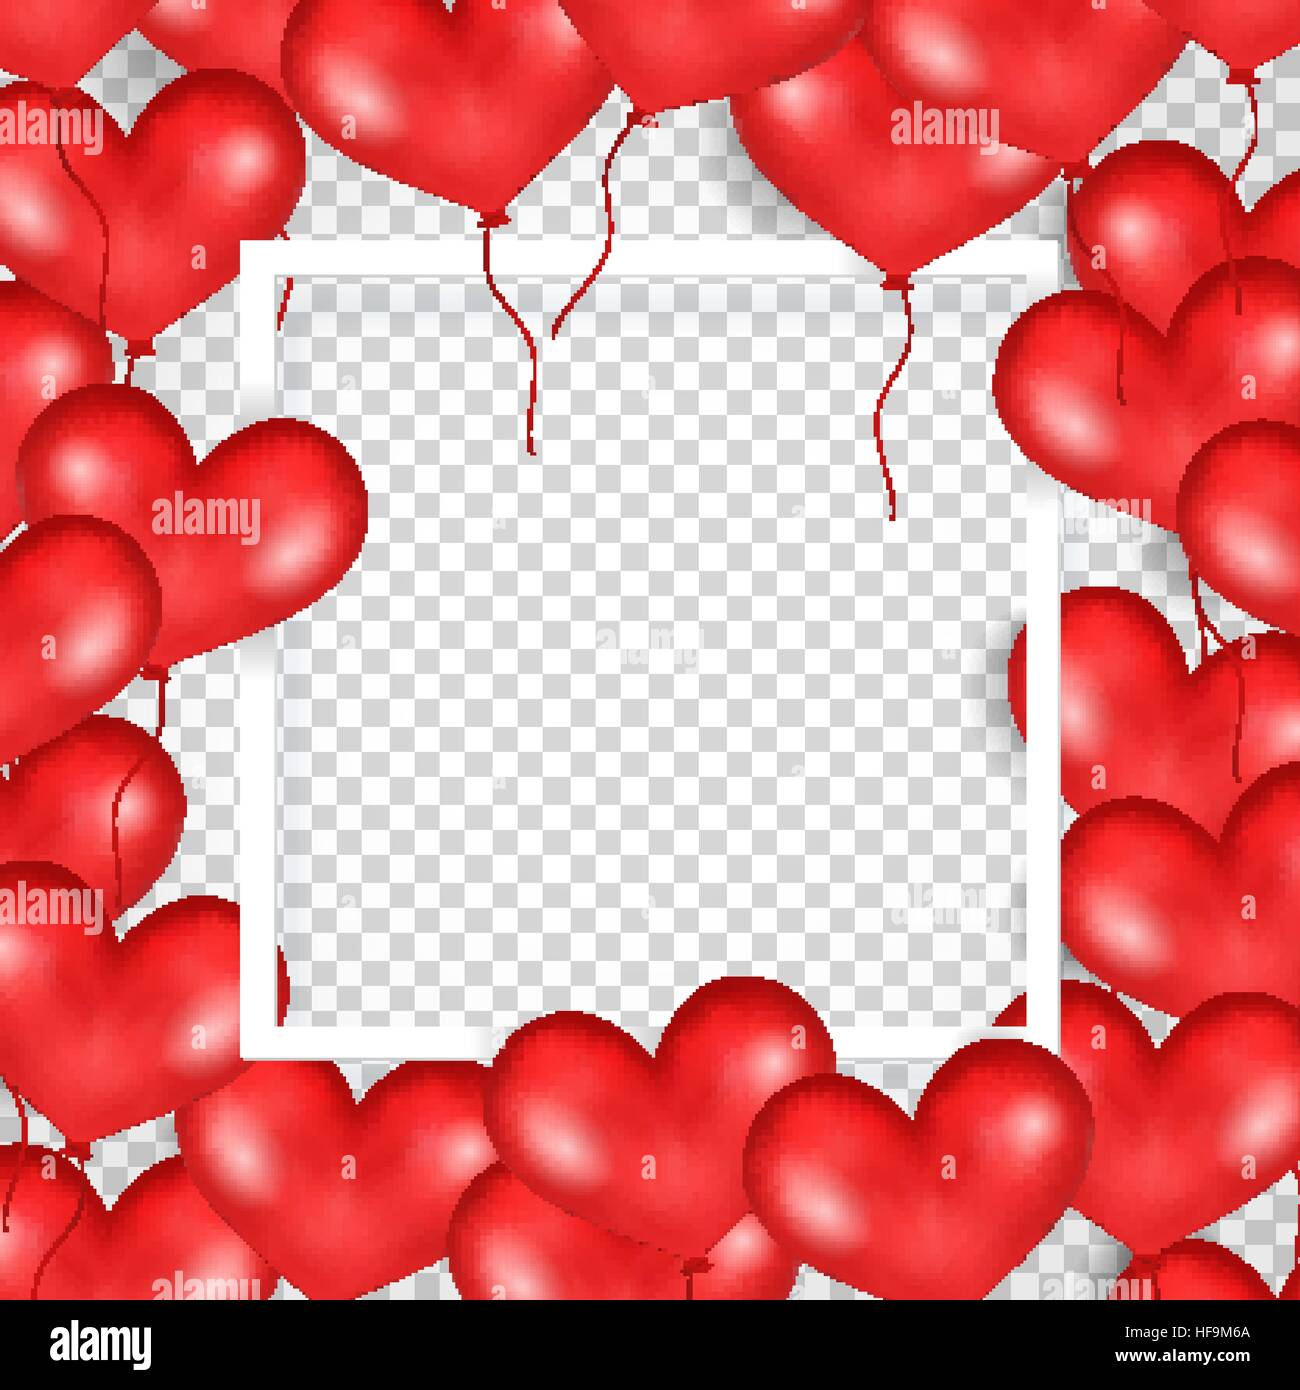 frame with red balloons in form of heart transparent background big place for text good for wedding anniversary birthday valentine s day party